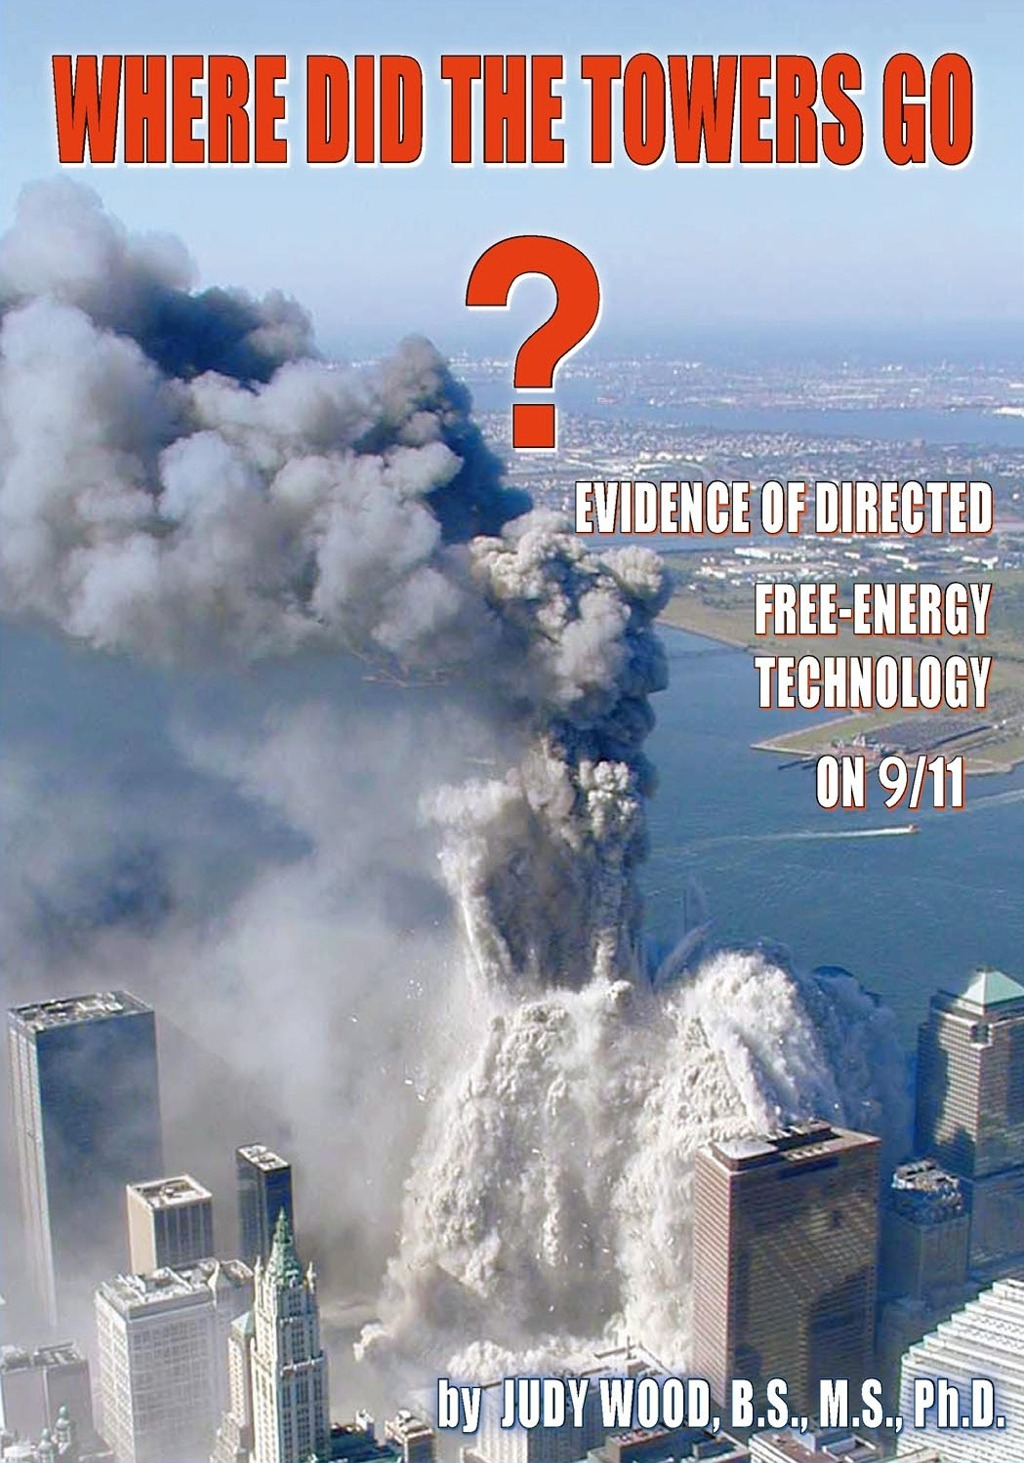 BOOK REVIEW: Dr Judy Wood's 9/11